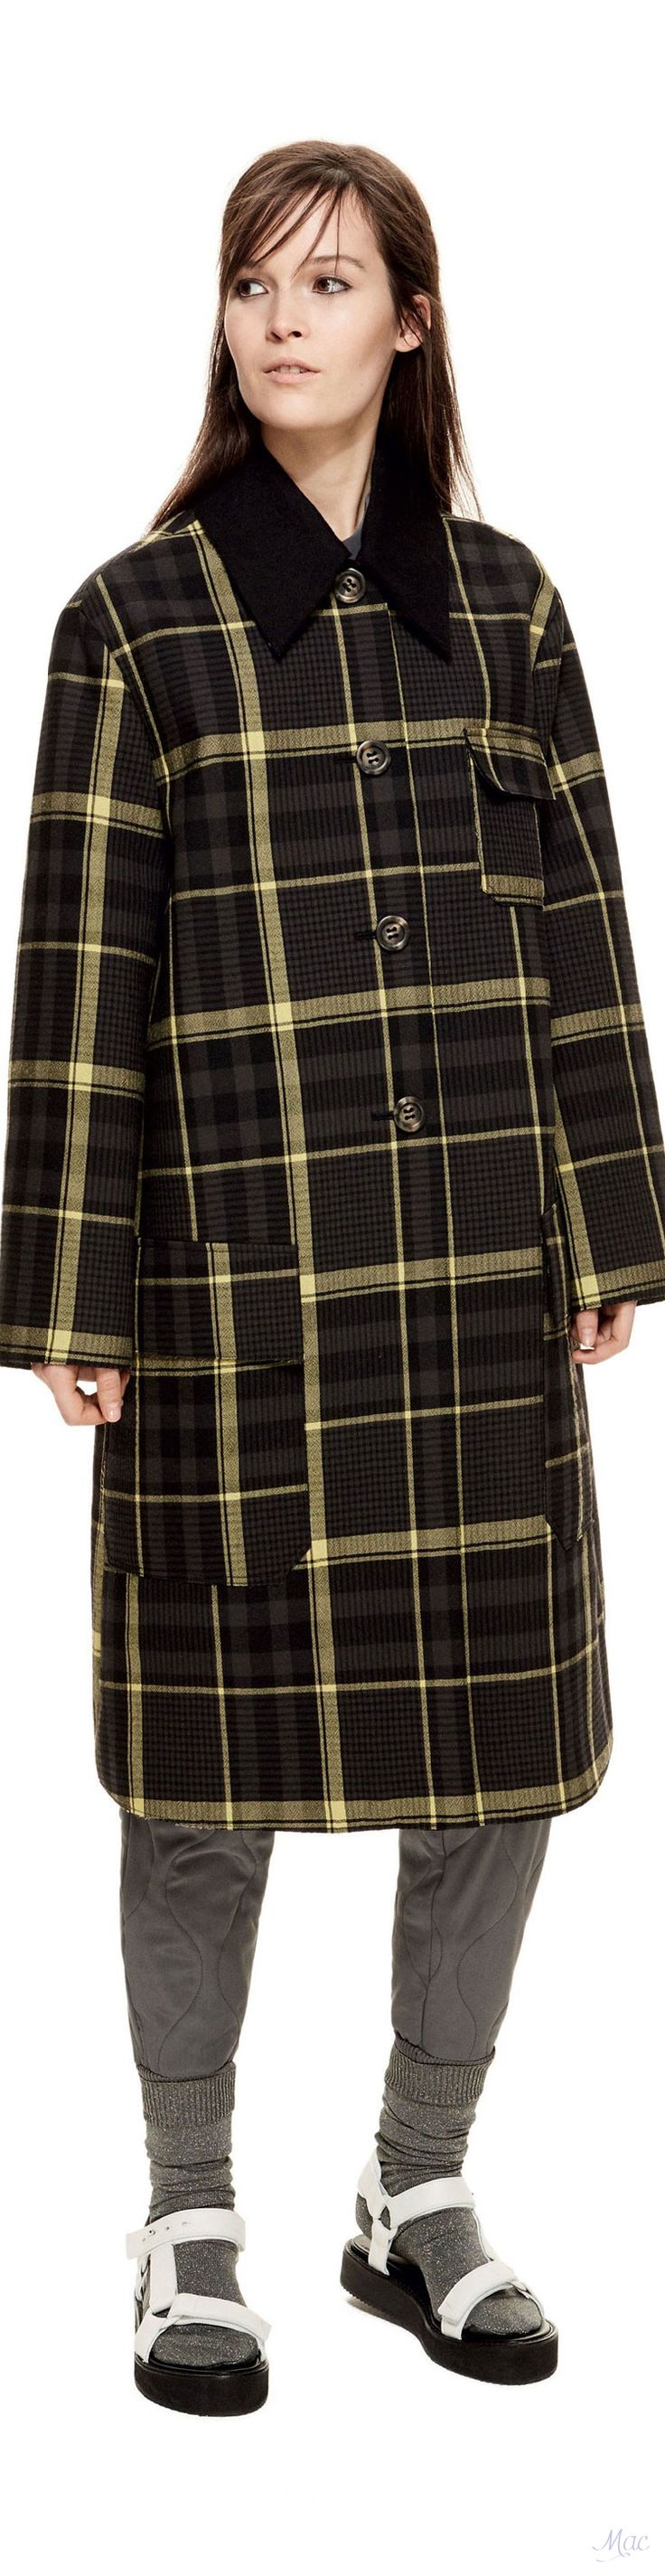 Trendy butler red flannel   best Kidus Hats images on Pinterest  Chess Plaid and Tartan